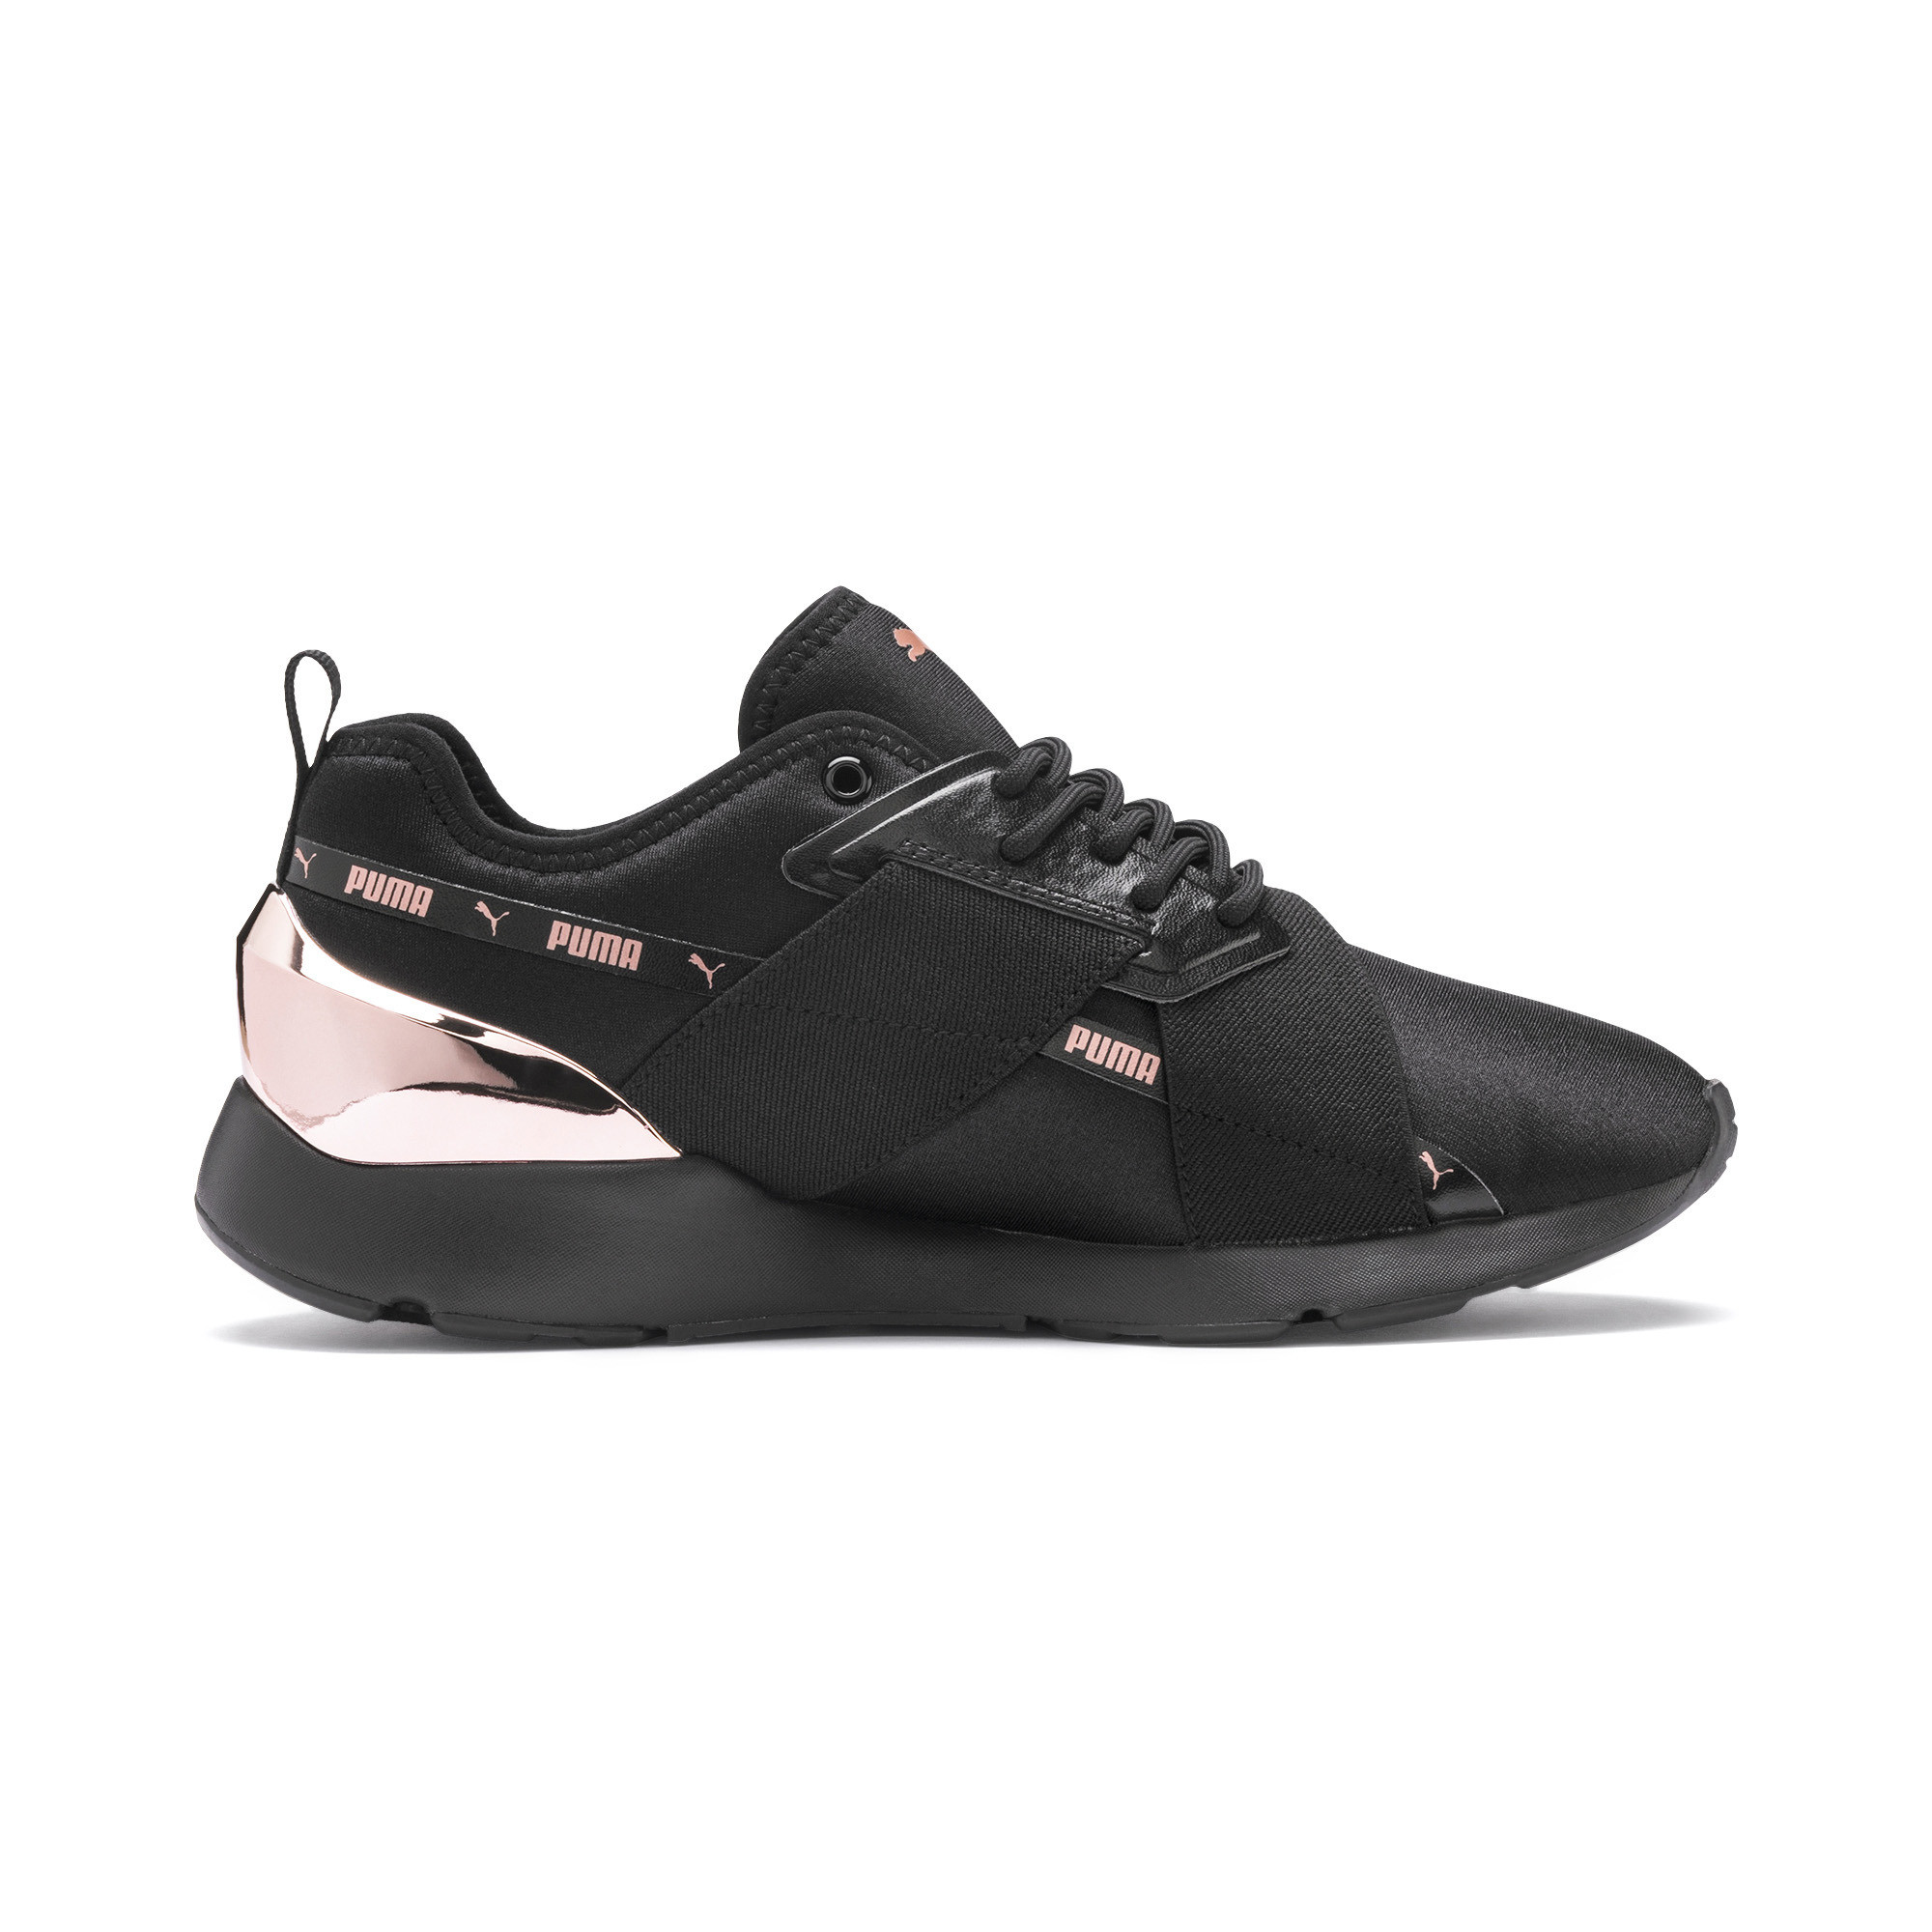 PUMA-Muse-X-2-Metallic-Women-039-s-Sneakers-Women-Shoe-Evolution thumbnail 21